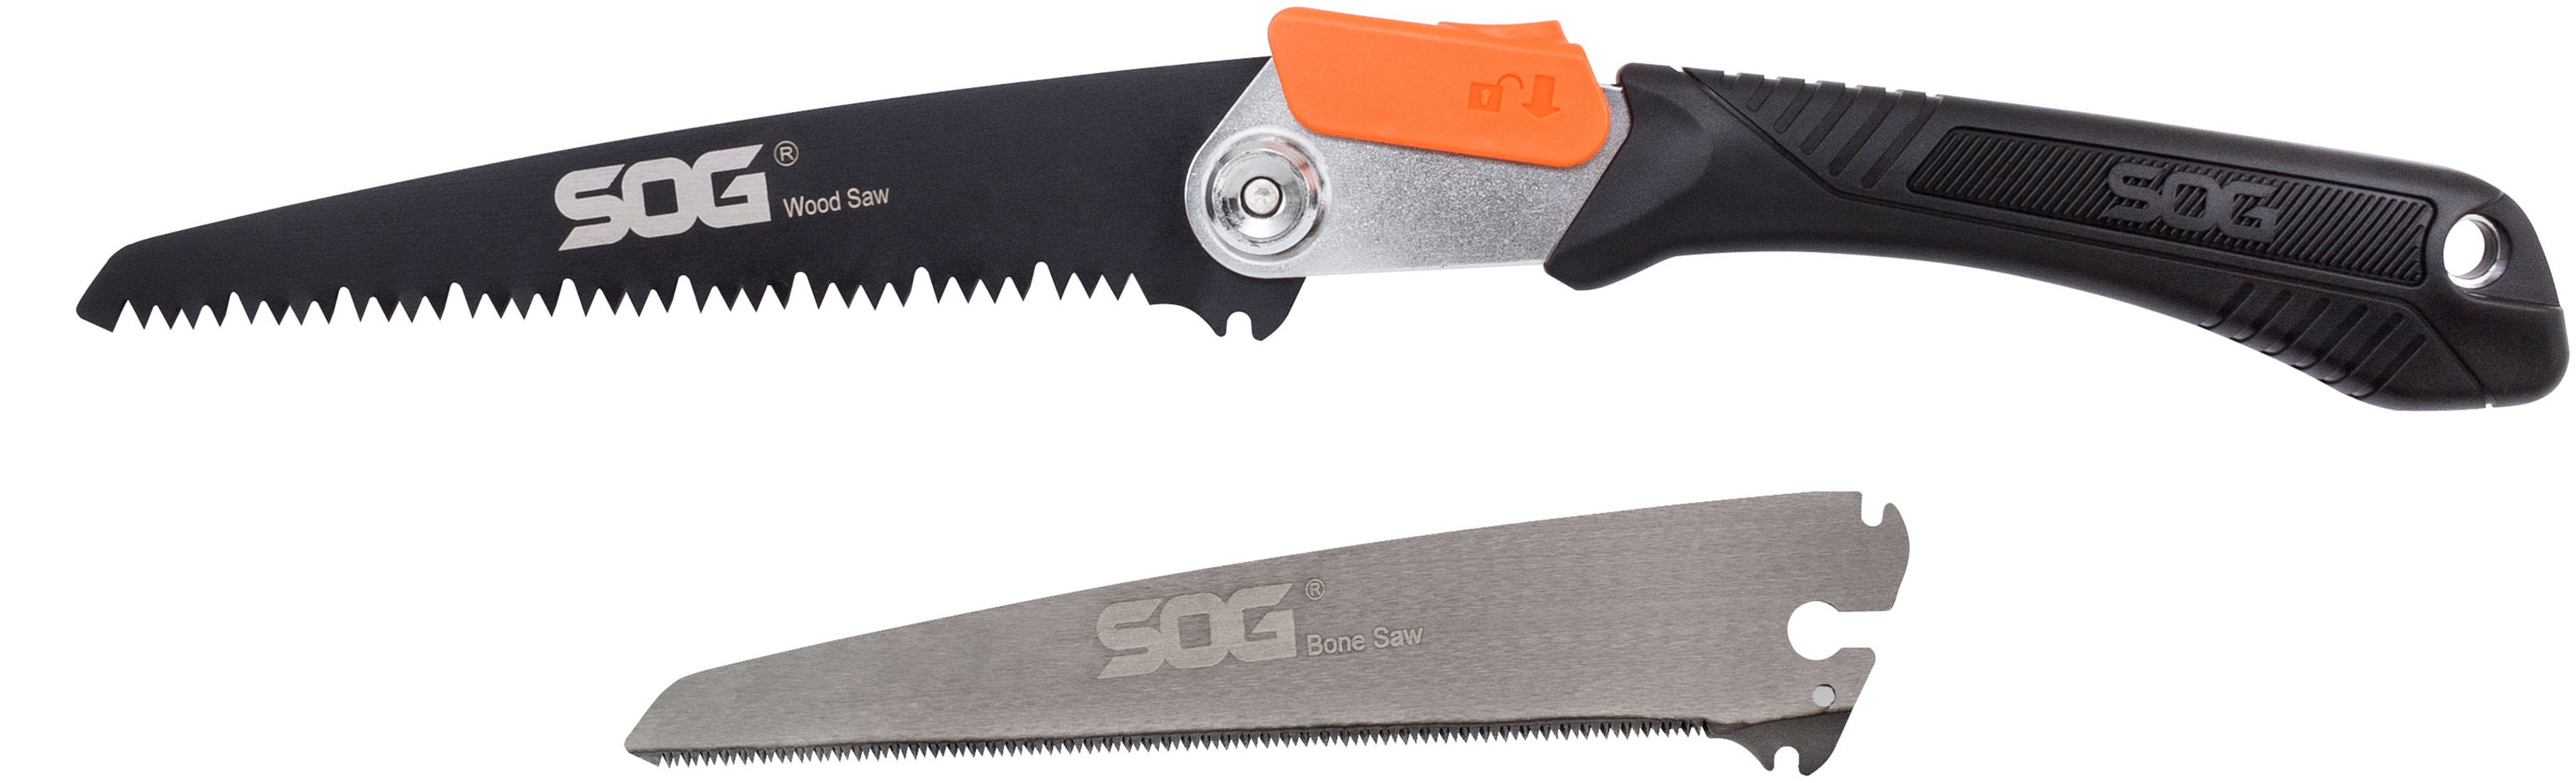 Buy SOG Folding Camp Saw at KnifeCenter